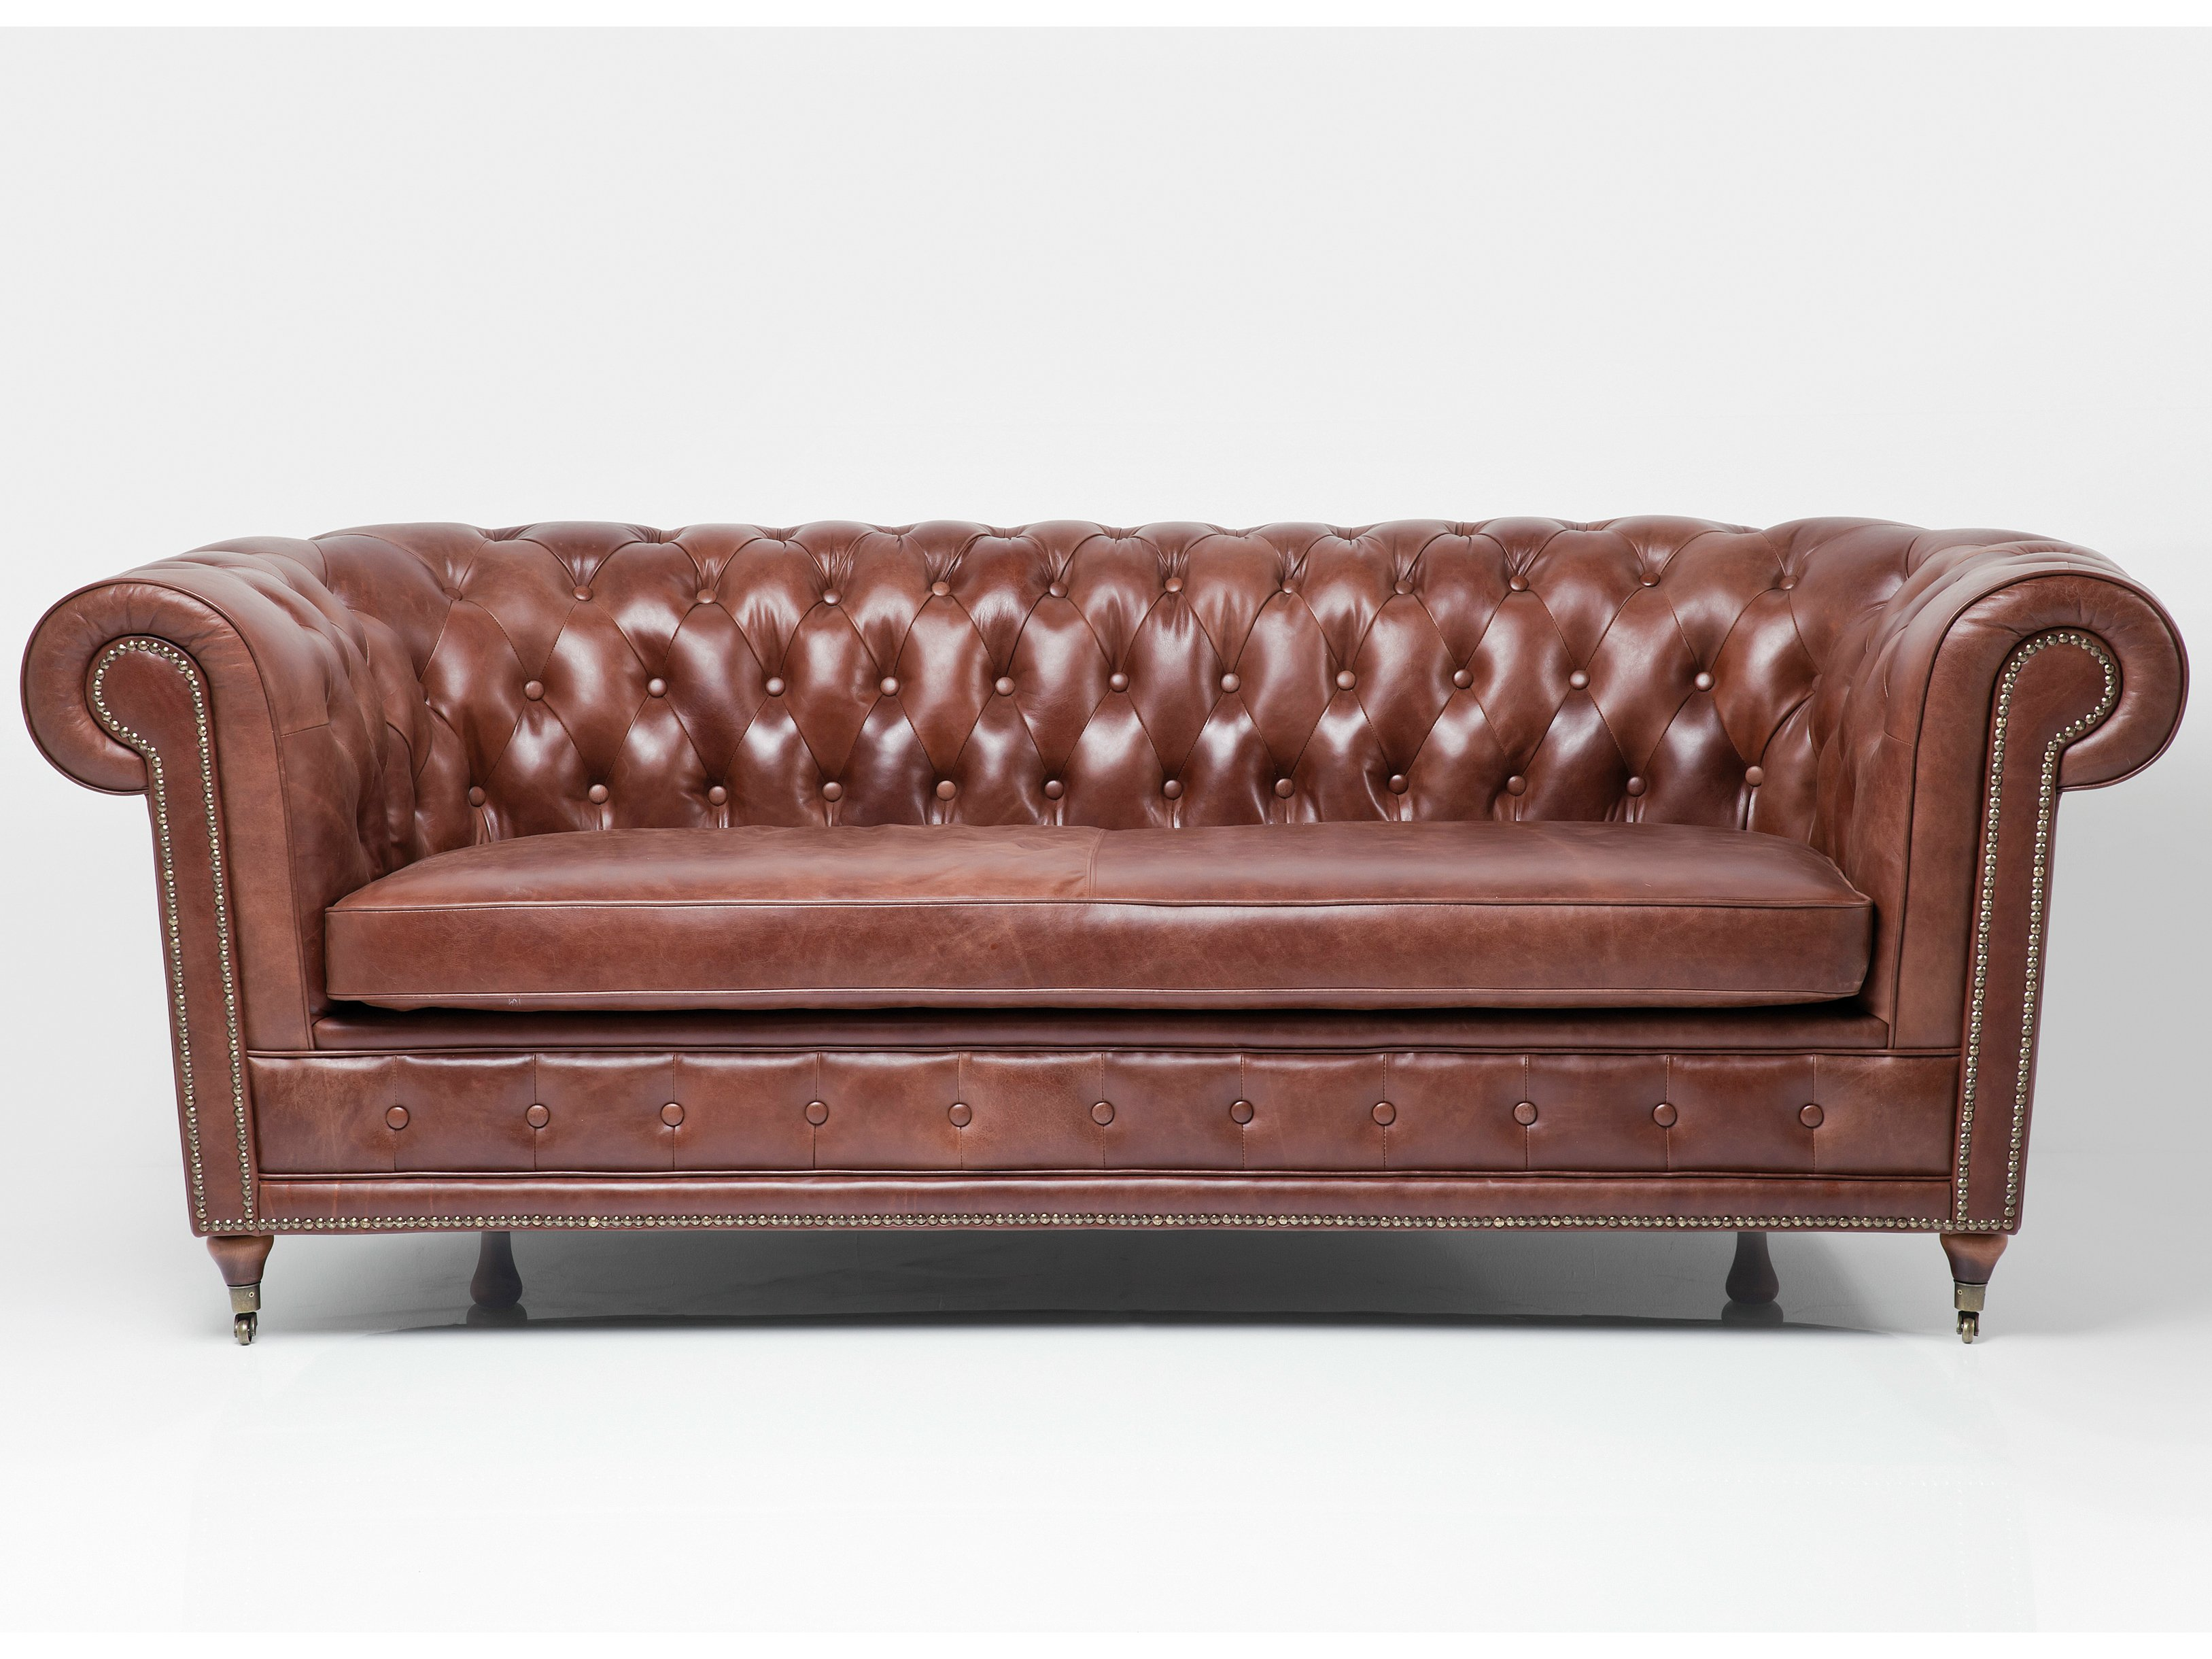 Oxford vintage eco sofa by kare design for Sofas de piel economicos